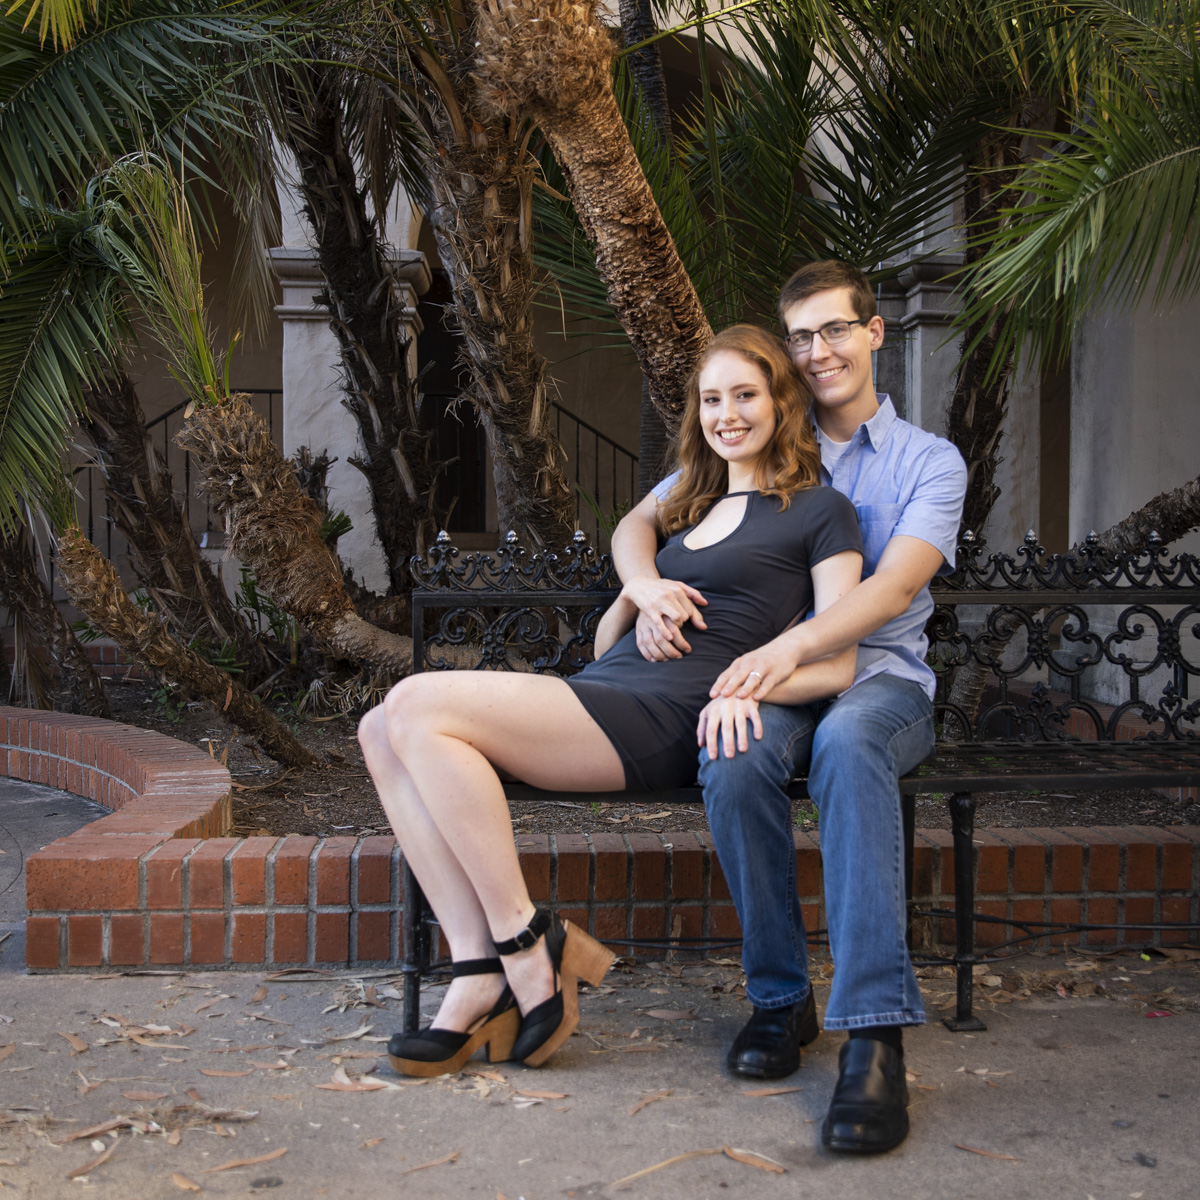 balboa-park-engagement-photos-16